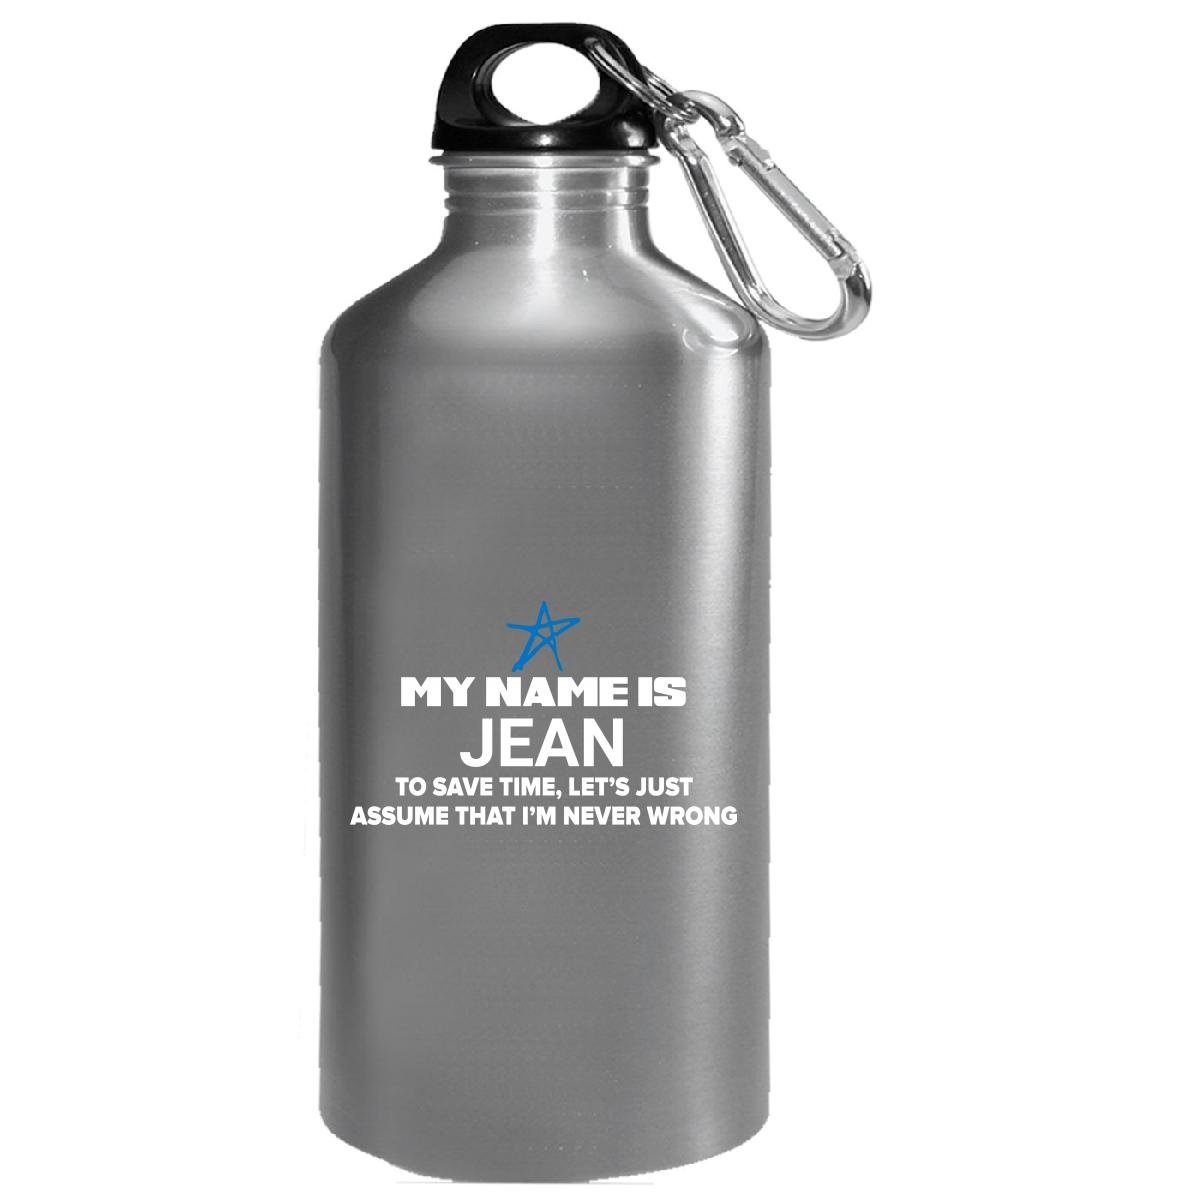 My Name Is Jean Let's Just Assume I'm Never Wrong - Water Bottle